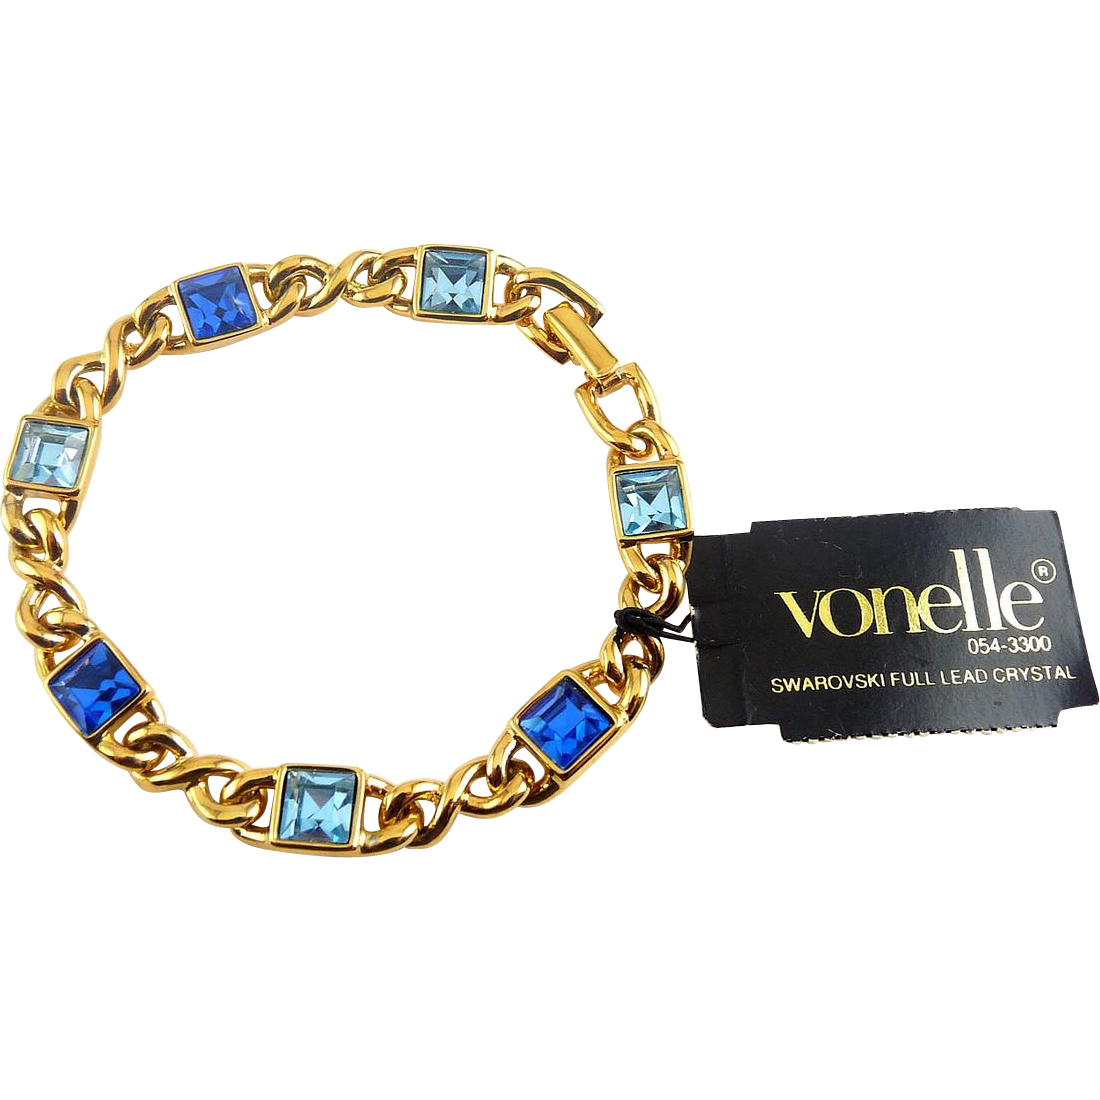 Vintage Swarovski VONELLE Gold Plated Bracelet with Blue Austrian Crystals - Original Tag